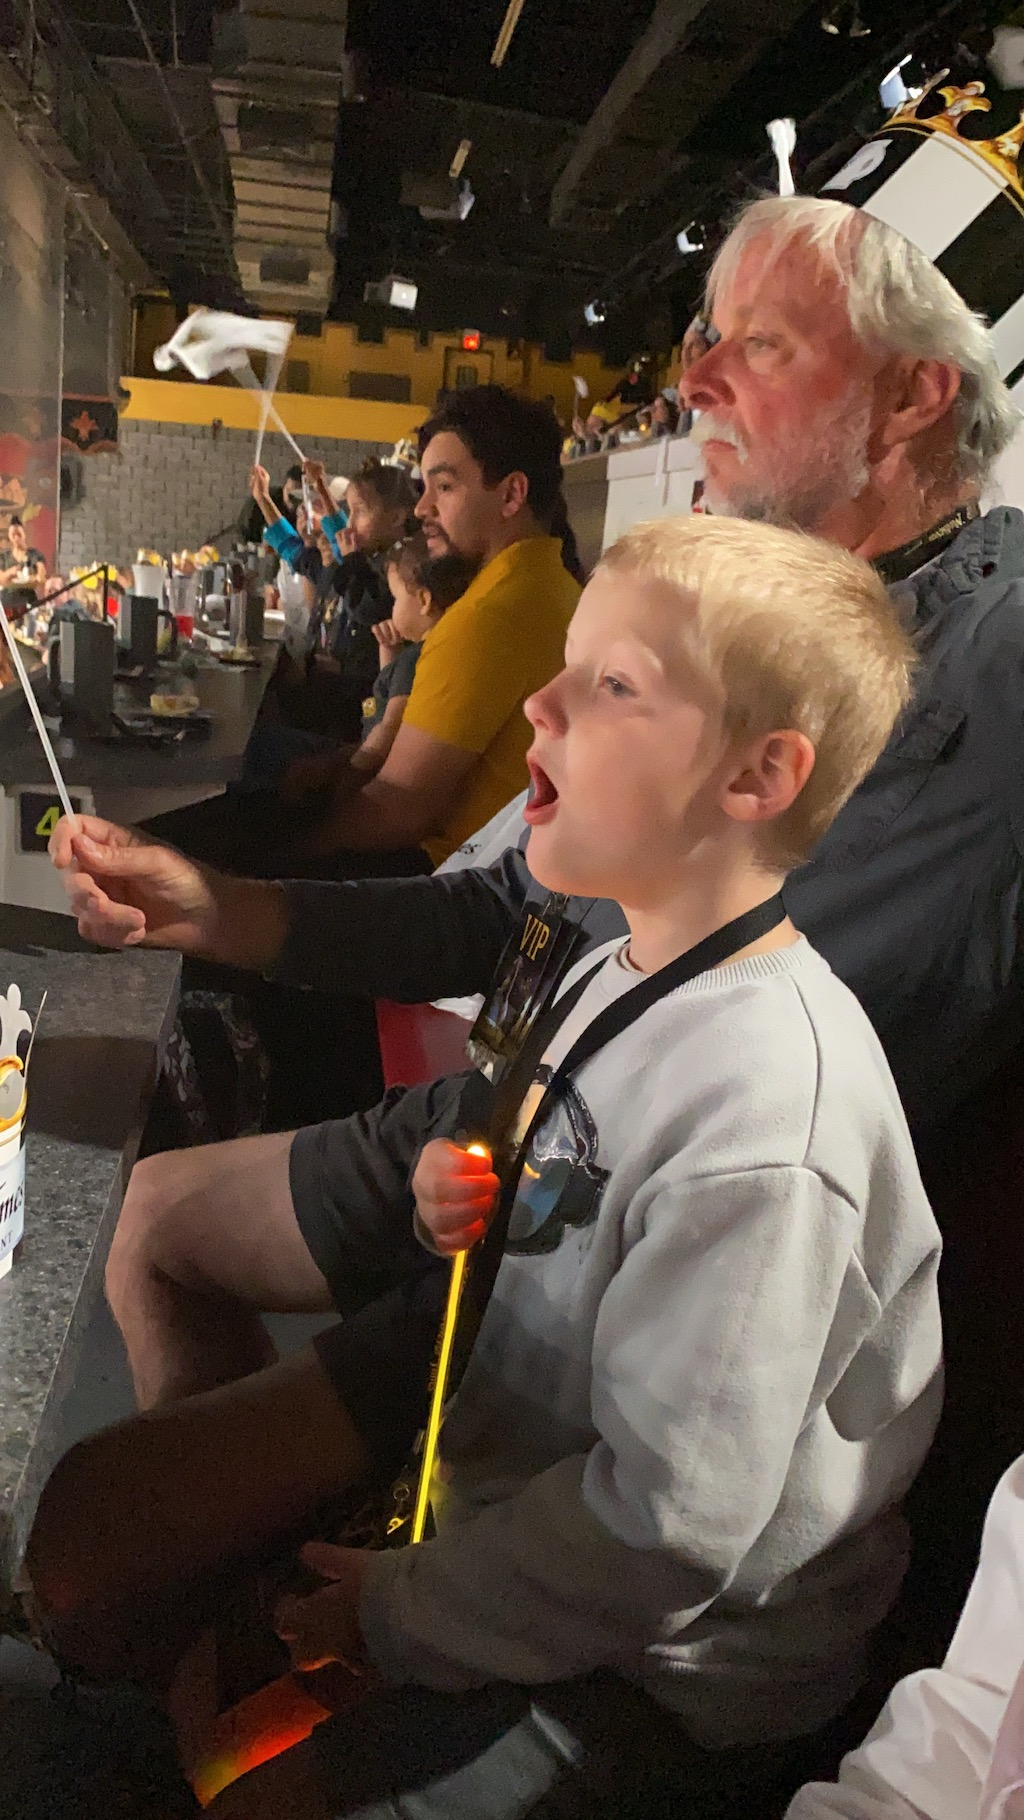 noah enjoying the show